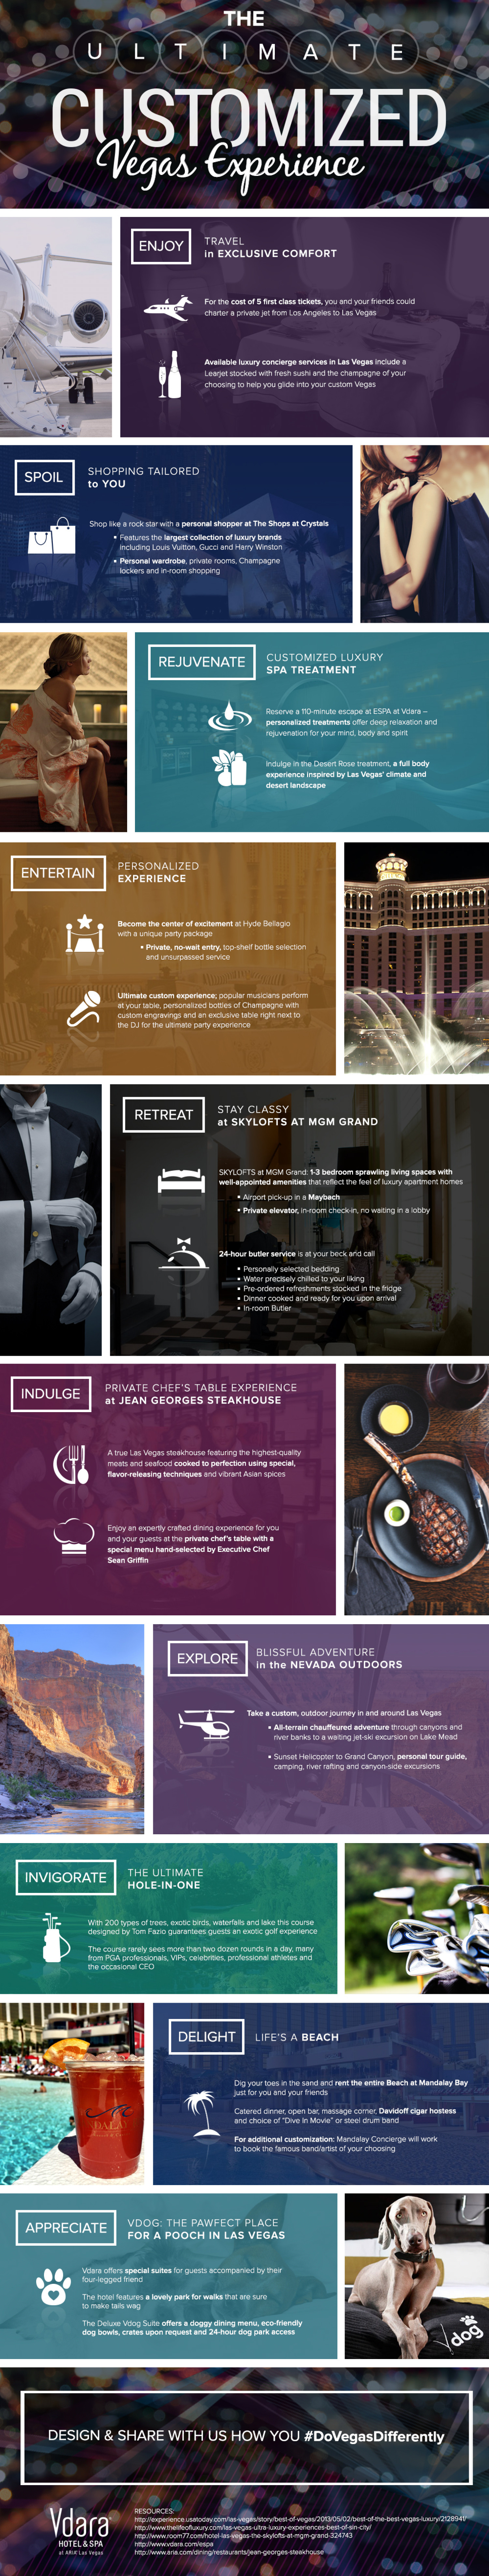 The Ultimate Customized Vegas Experience Infographic